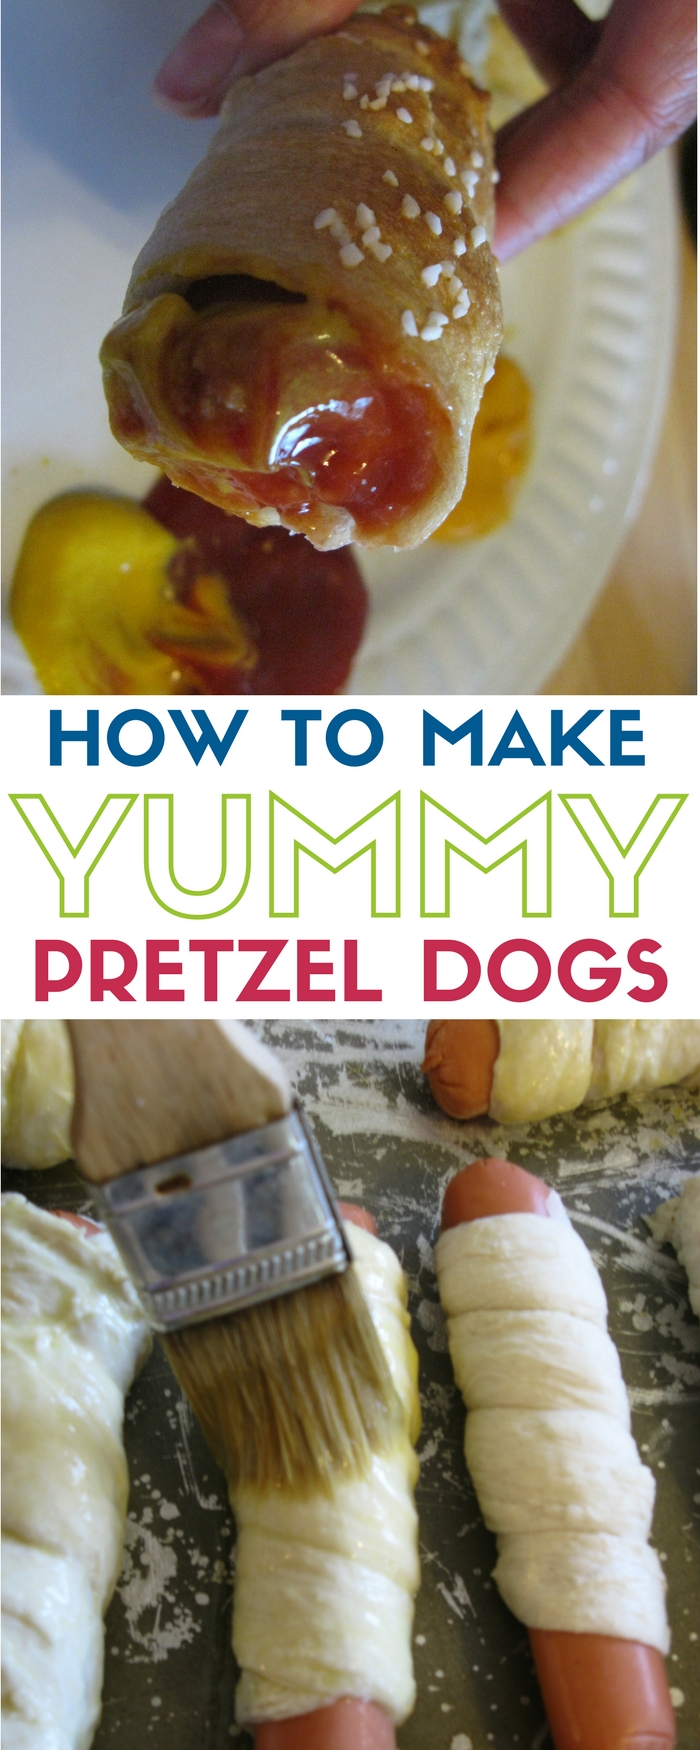 Pretzel Dogs Recipe | Meal Ideas | What's for dinner? | Easy Homemade Recipe